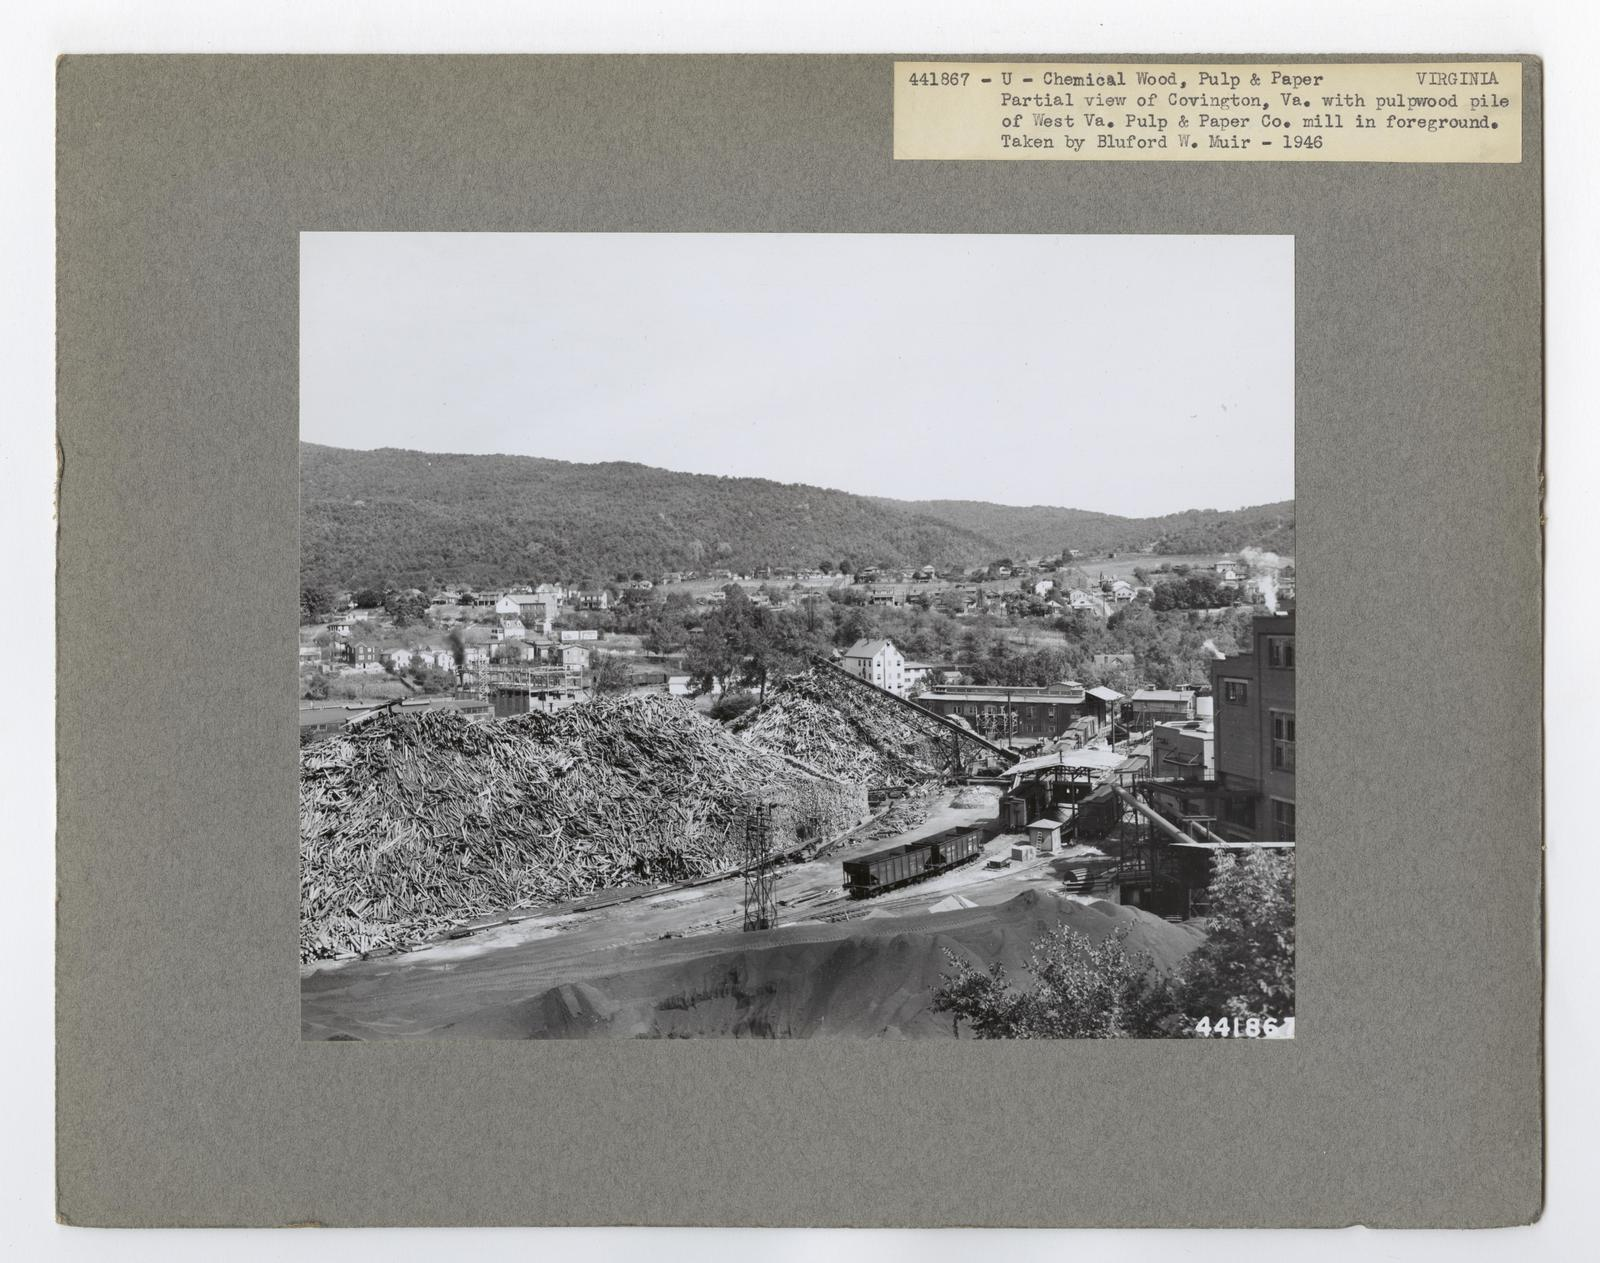 Pulp and Paper Mills - Virginia